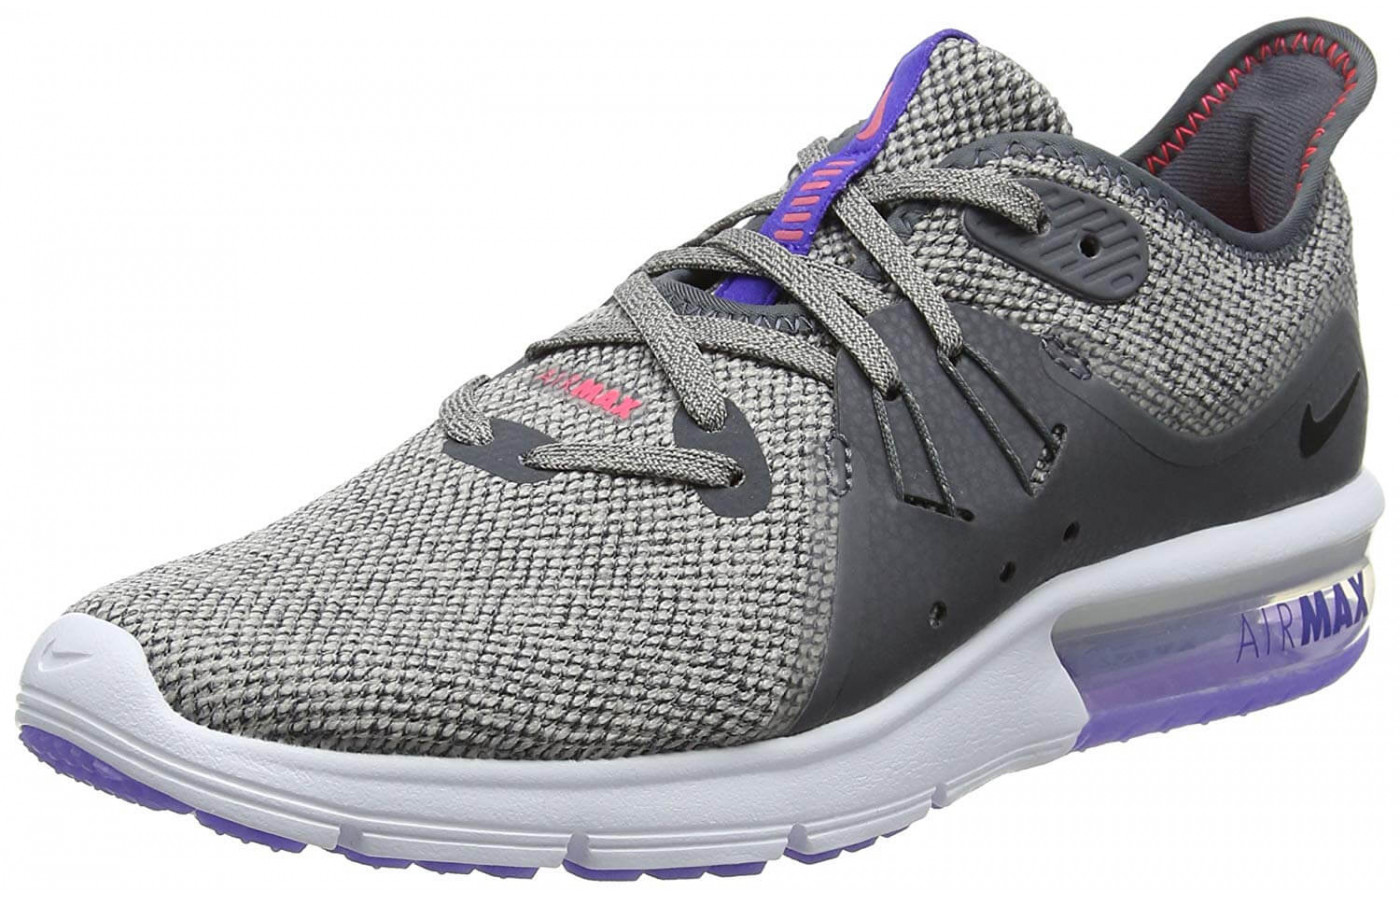 544bee0515fe2b The Air Max Sequent 3 is available in a number of different colorways ...